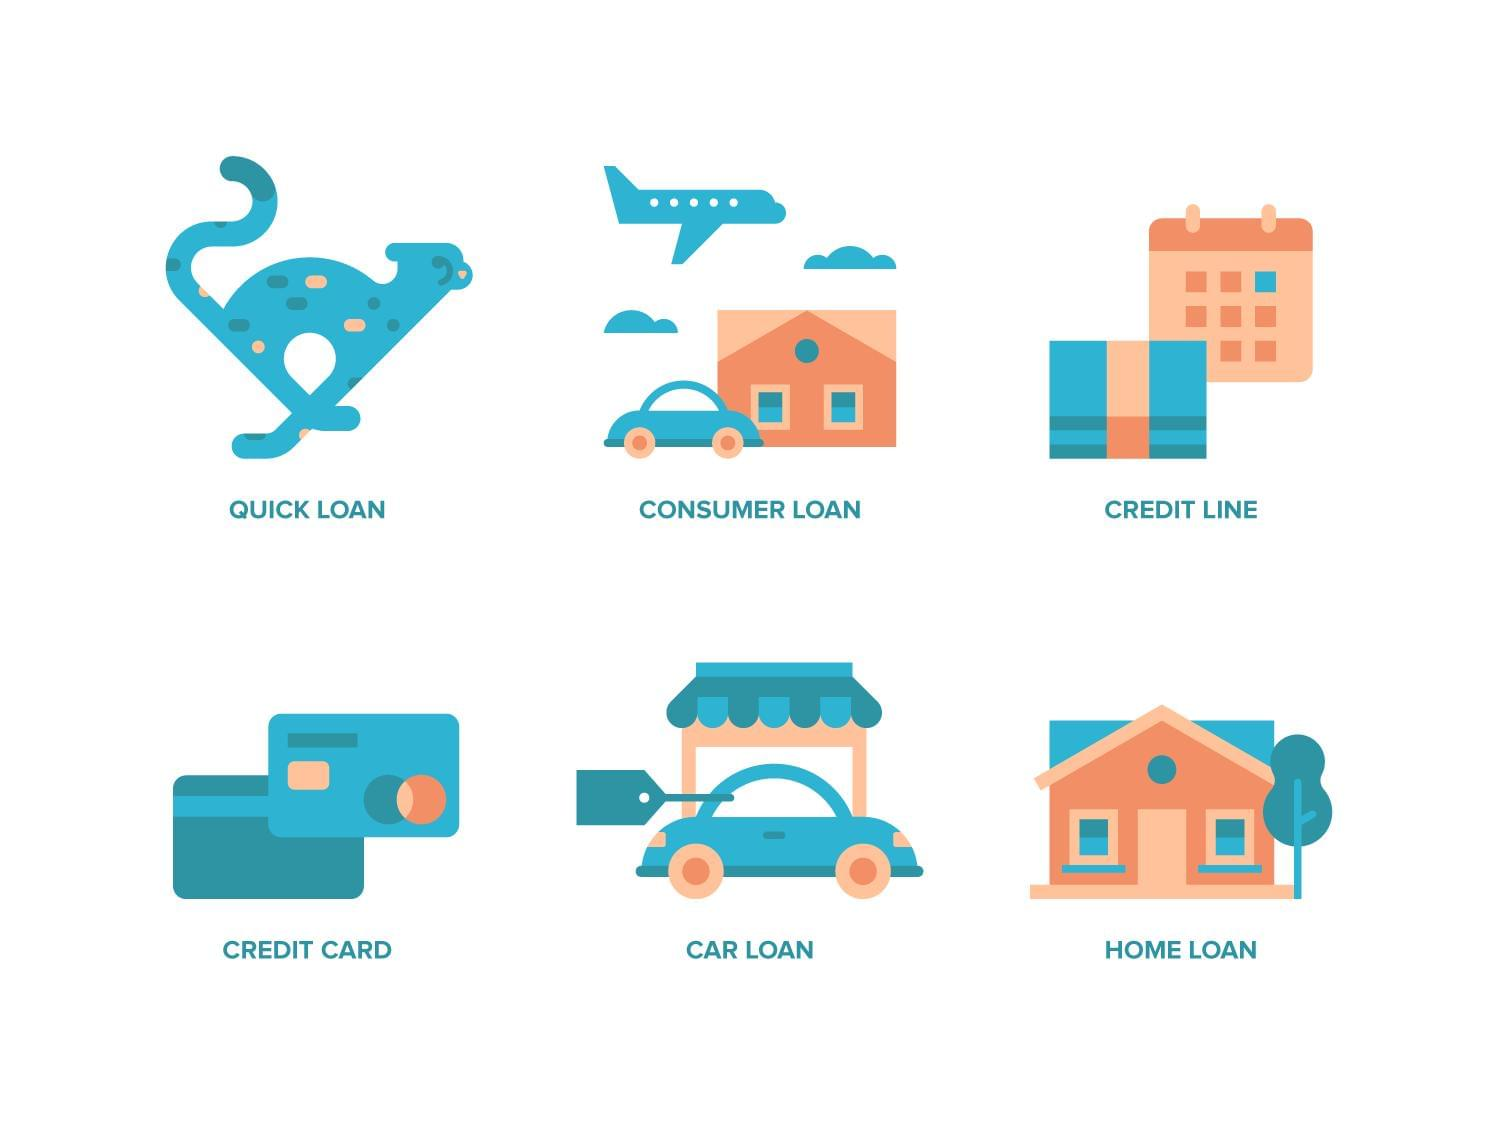 Custom Vector Illustrations & Icons by eightbit - 111775